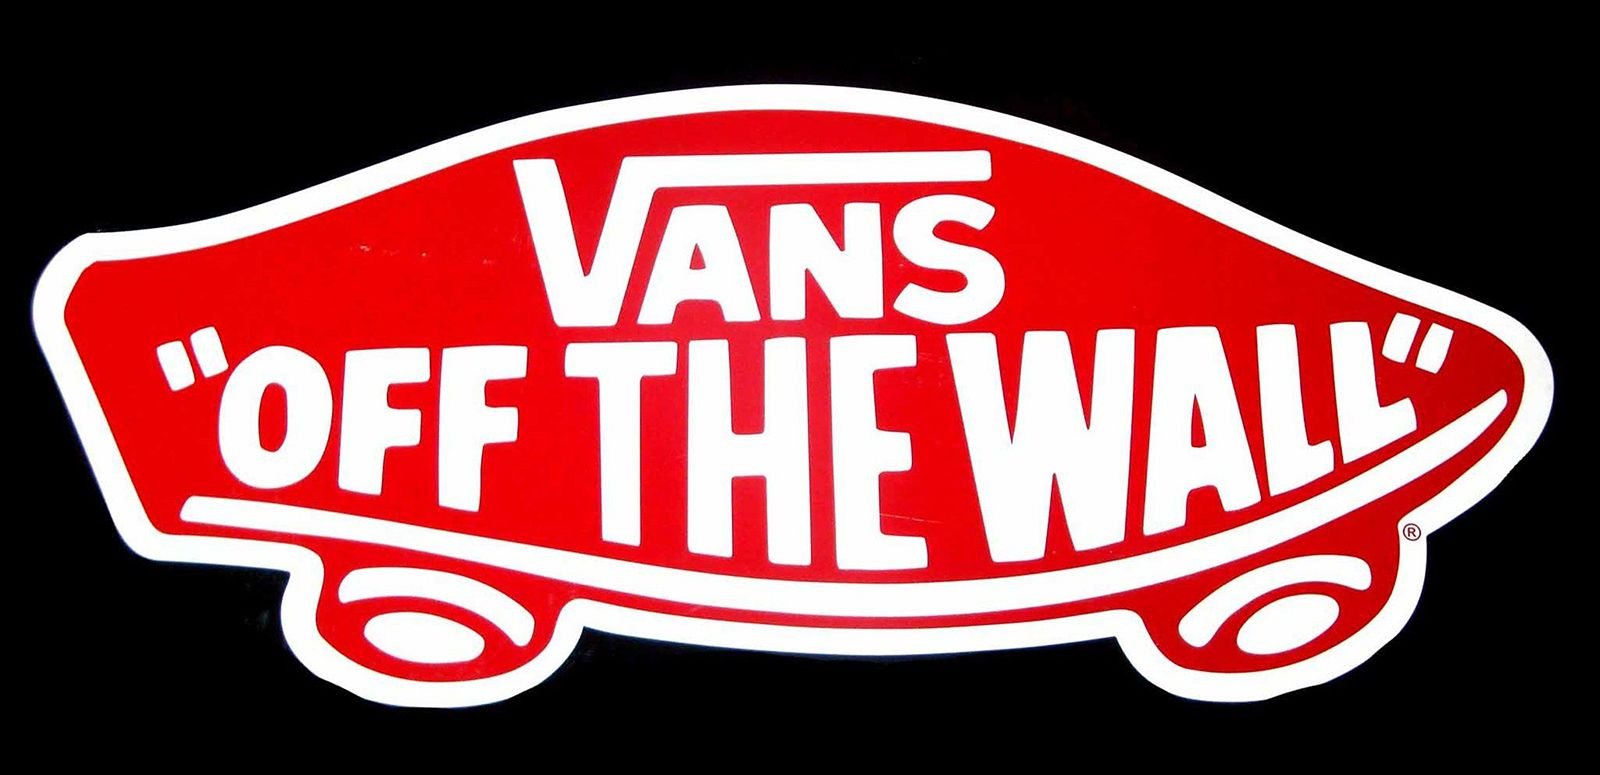 Vans Logo - Color Vans Logo | All logos world in 2019 | Vans logo, Vans, Logos